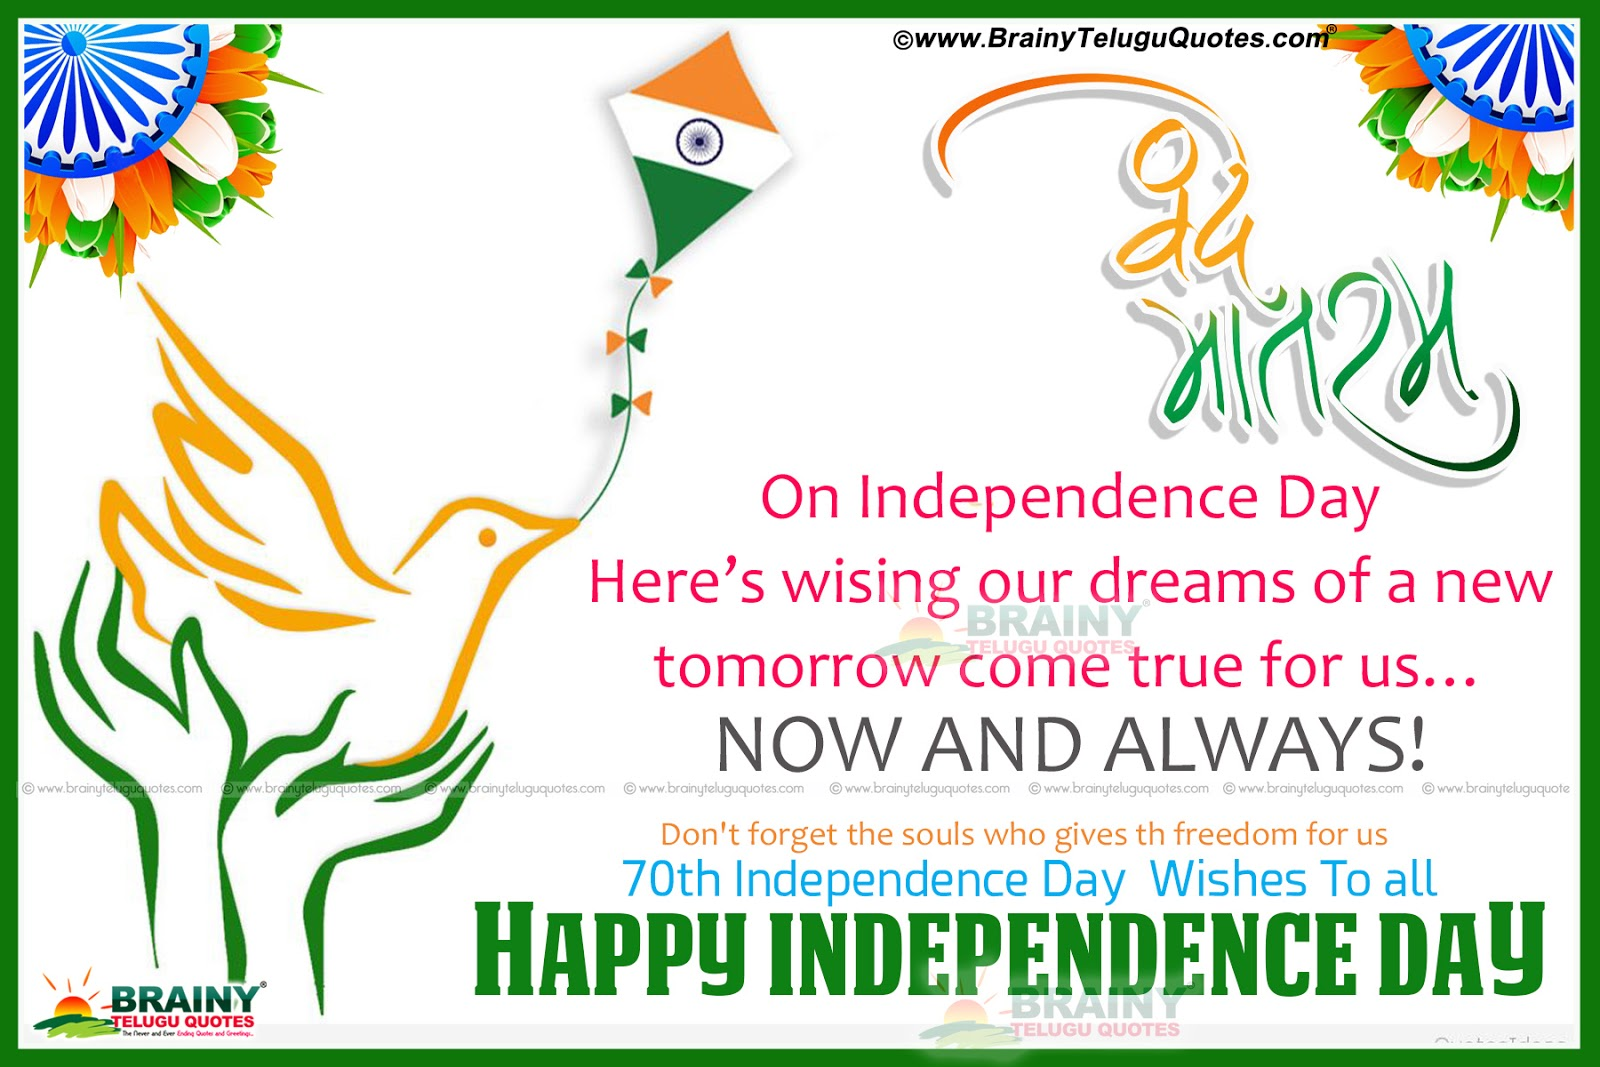 Latest English August 15 Indian Independence Day Wishes Images,  Independence Day Freedom Quotes And Struggle